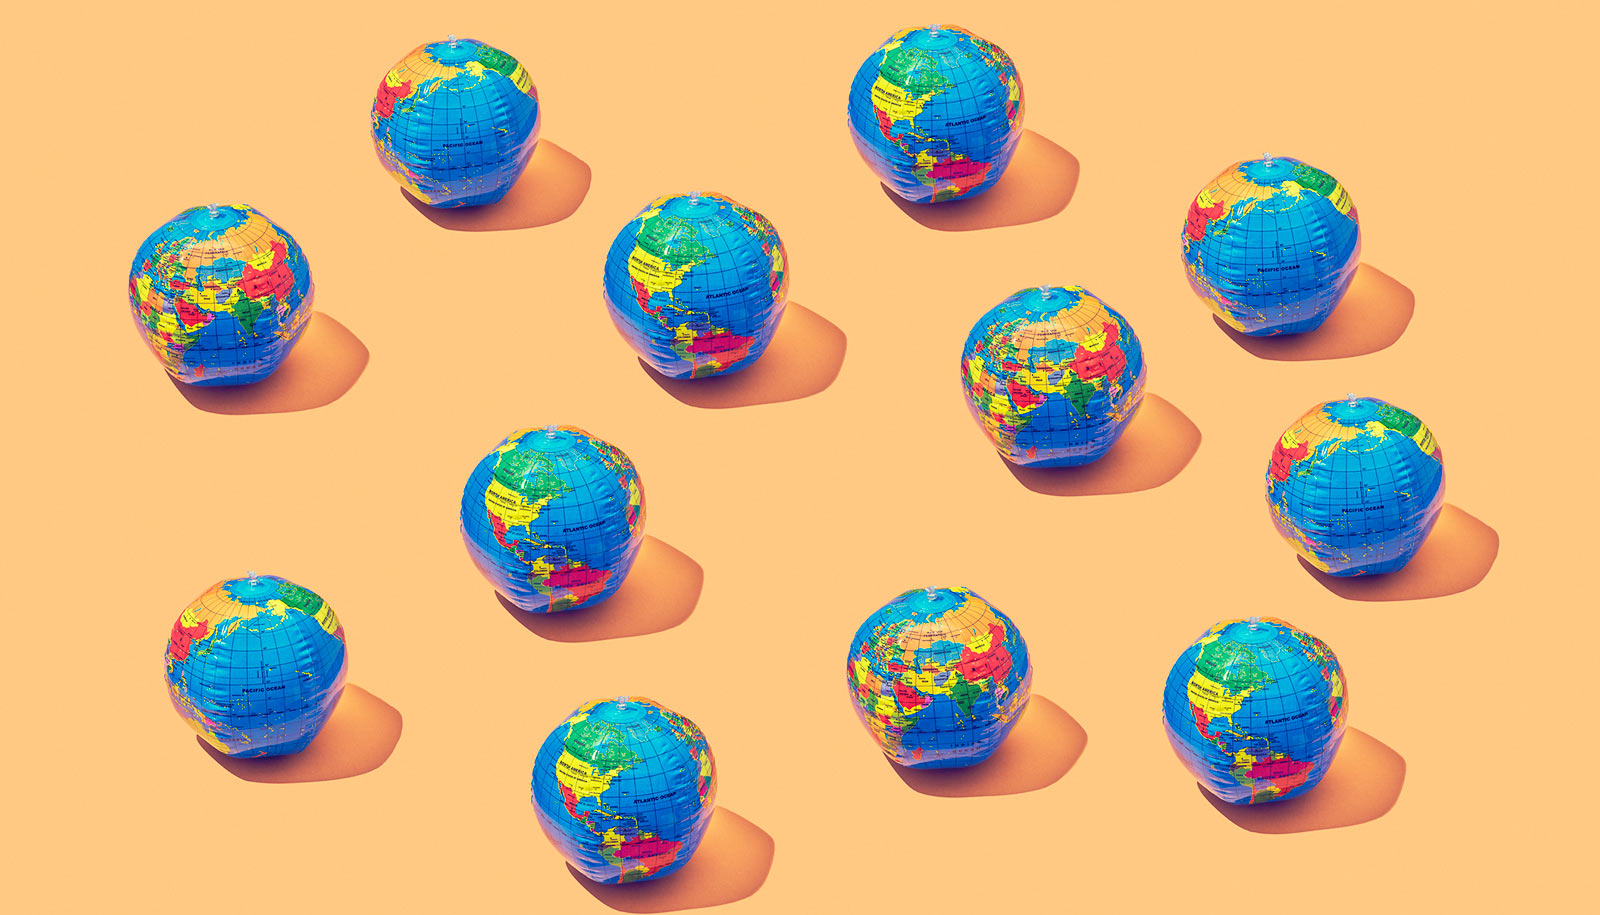 There's no 1 sustainable future for a diverse world